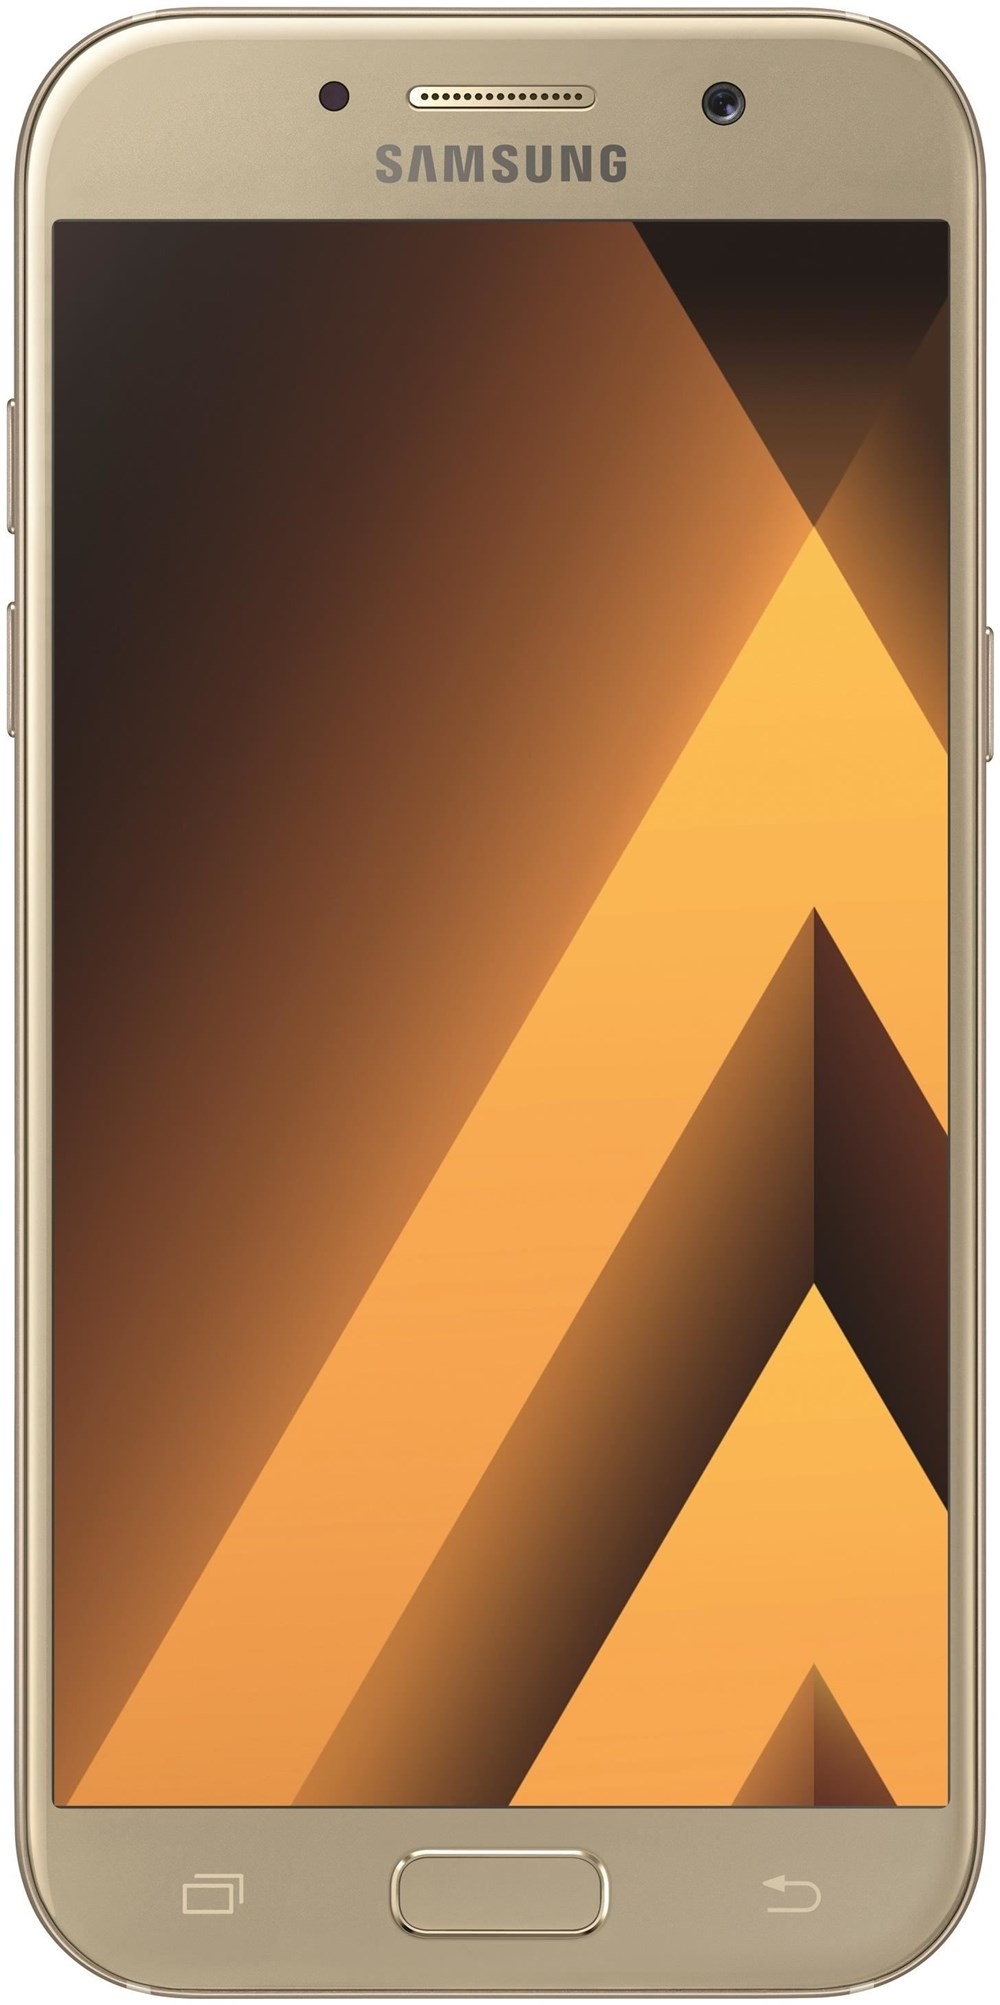 Samsung Galaxy A5 (2017) 32GB Android gold - Smartphones & Cell ...